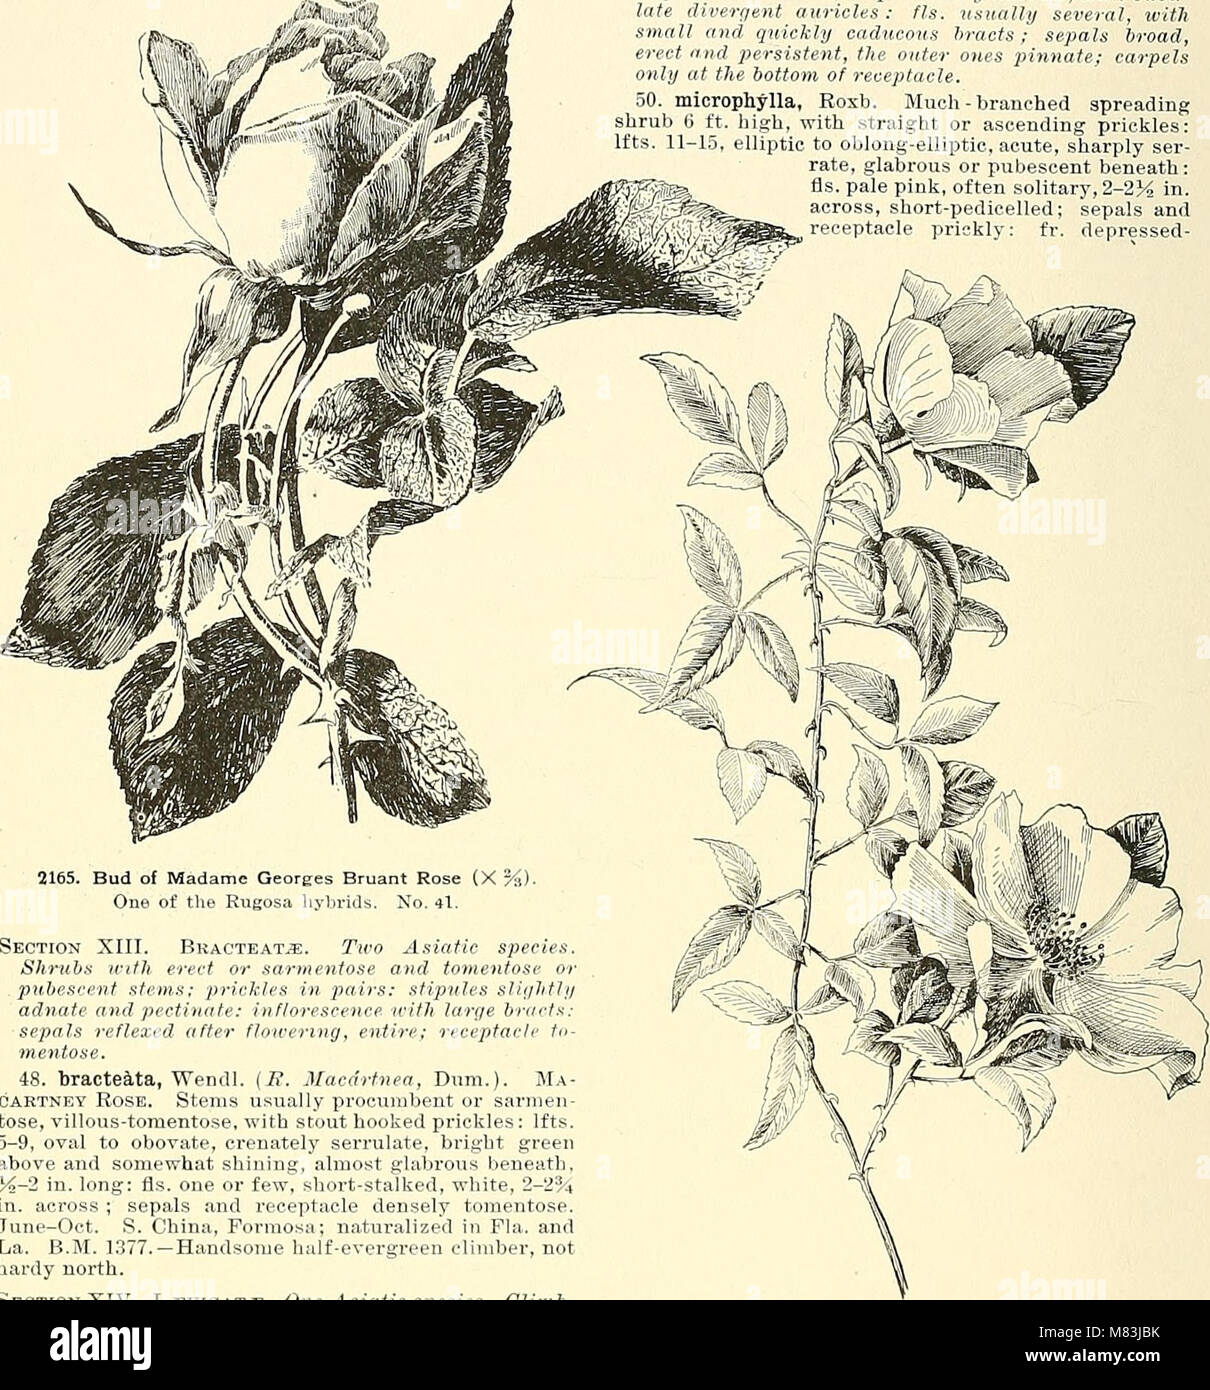 Cyclopedia of American horticulture, comprising suggestions for cultivation of horticultural plants, descriptions Stock Photo